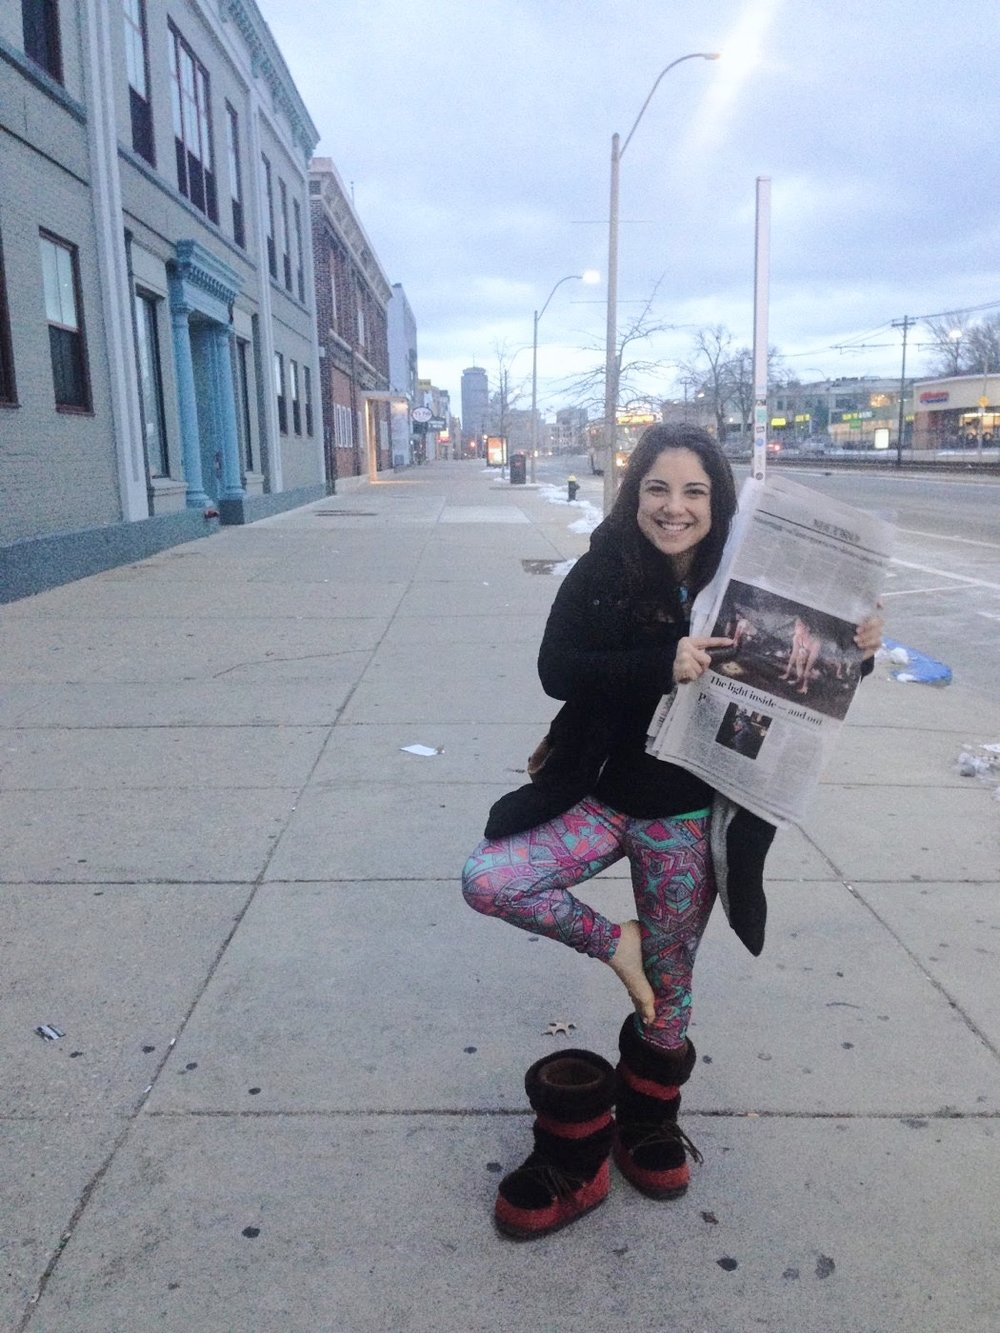 After turning my attitude around, I received a call from the Boston Globe, who wrote an  article  about my work at Pop Allston, which appeared on the first page of the Metro section in the Sunday publication.